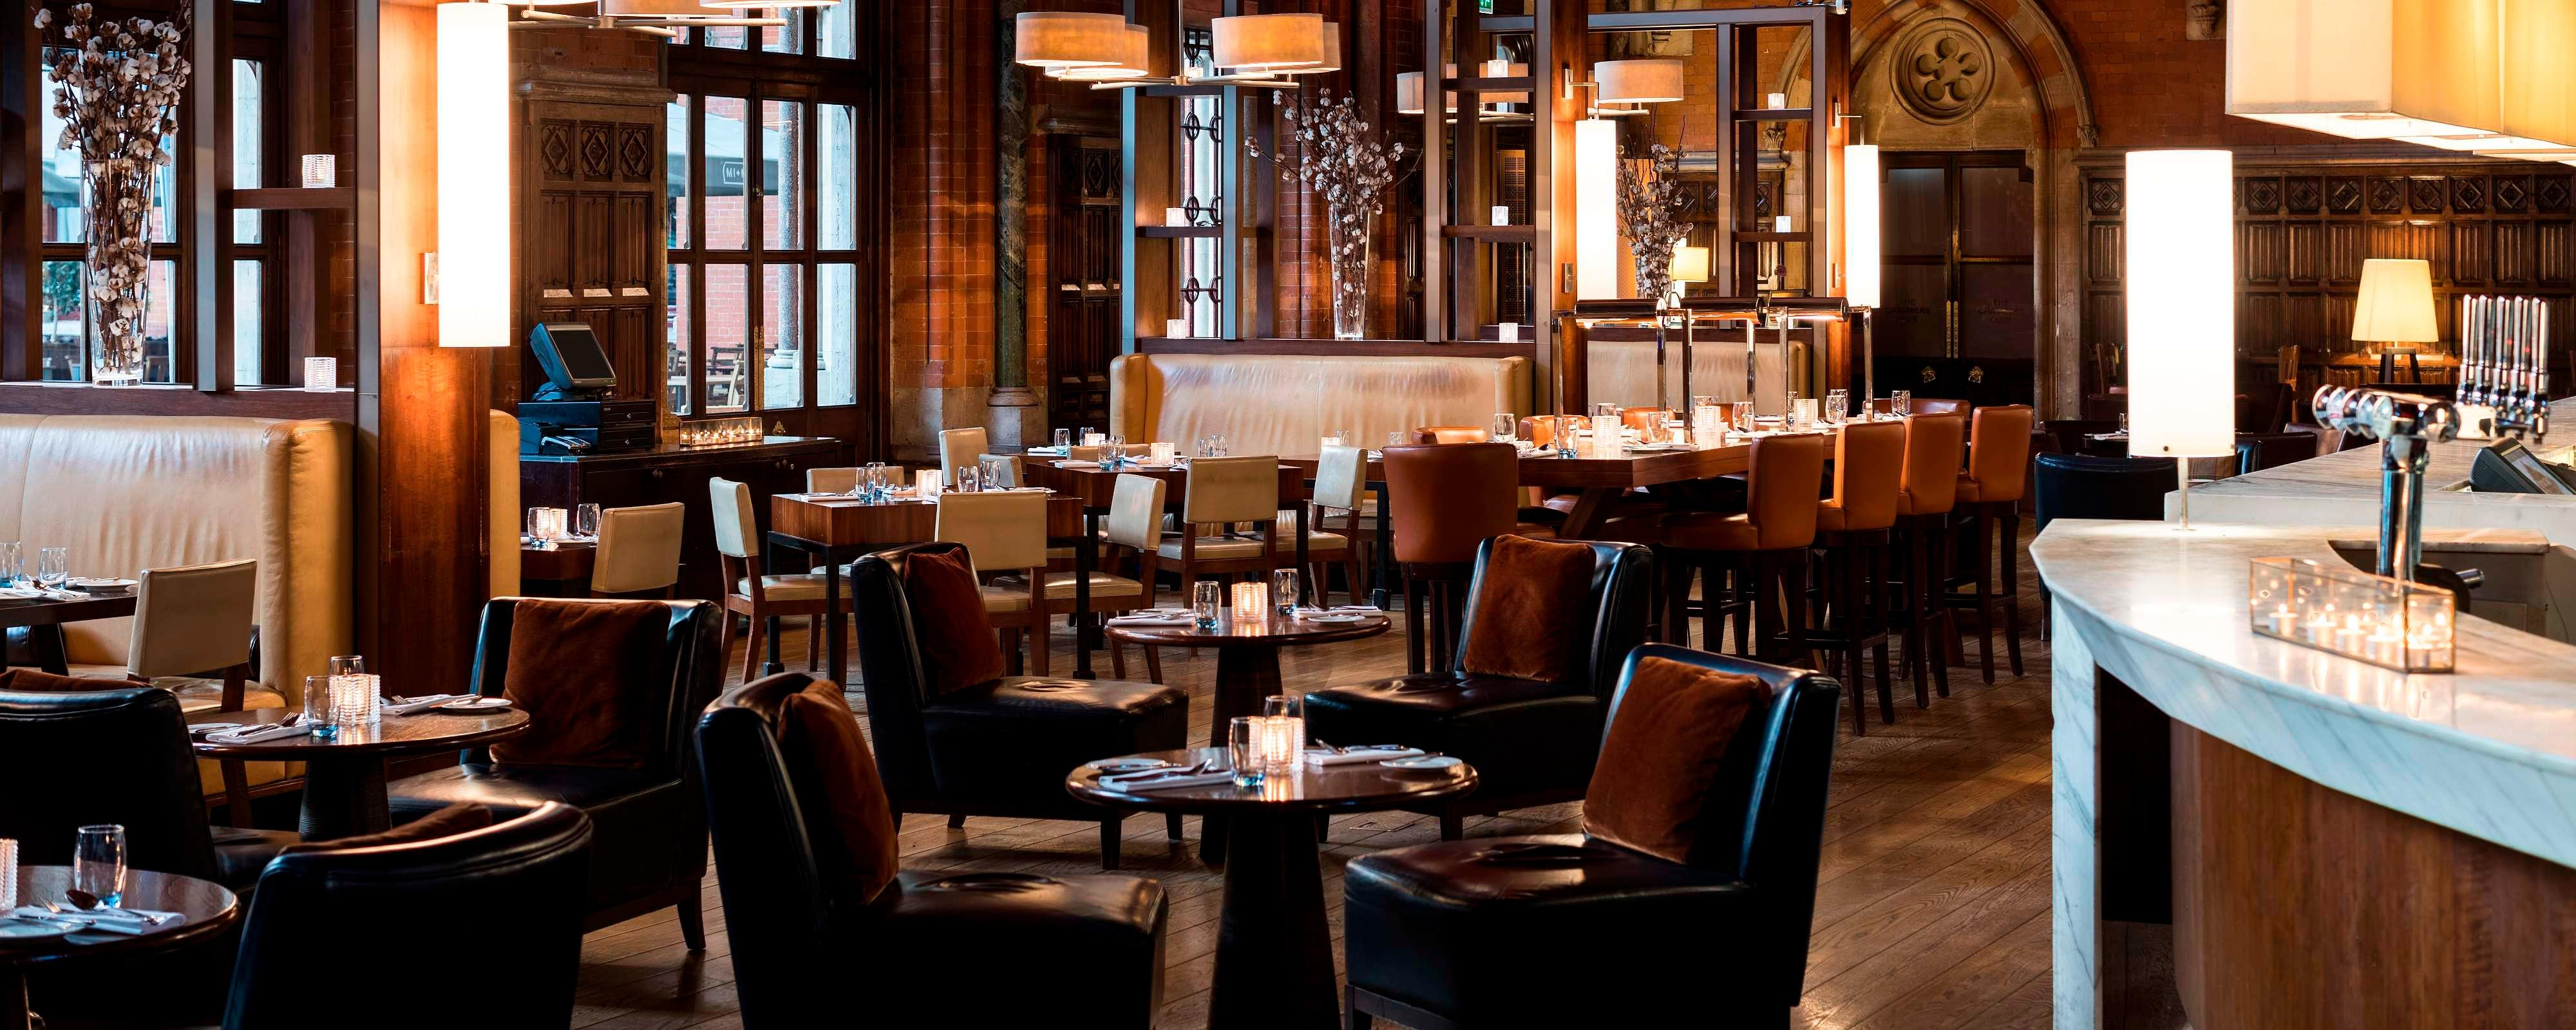 interior design for hotels and restaurants london